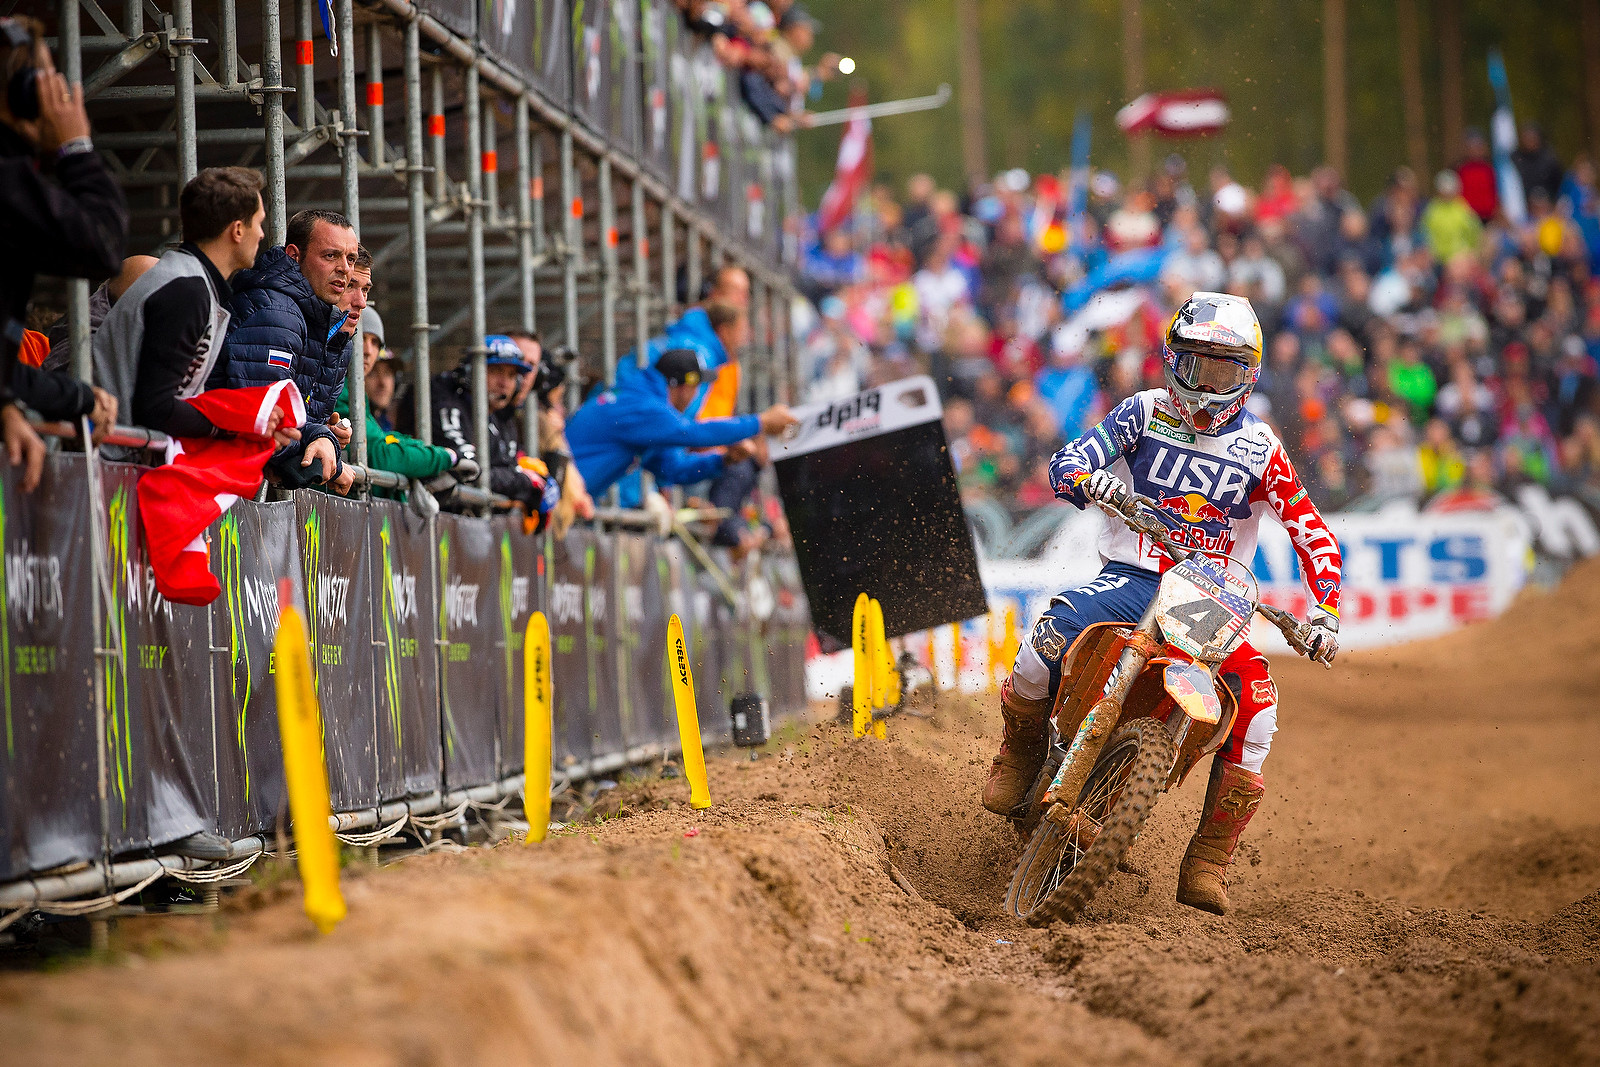 Ryan Dungey - kardy - Motocross Pictures - Vital MX